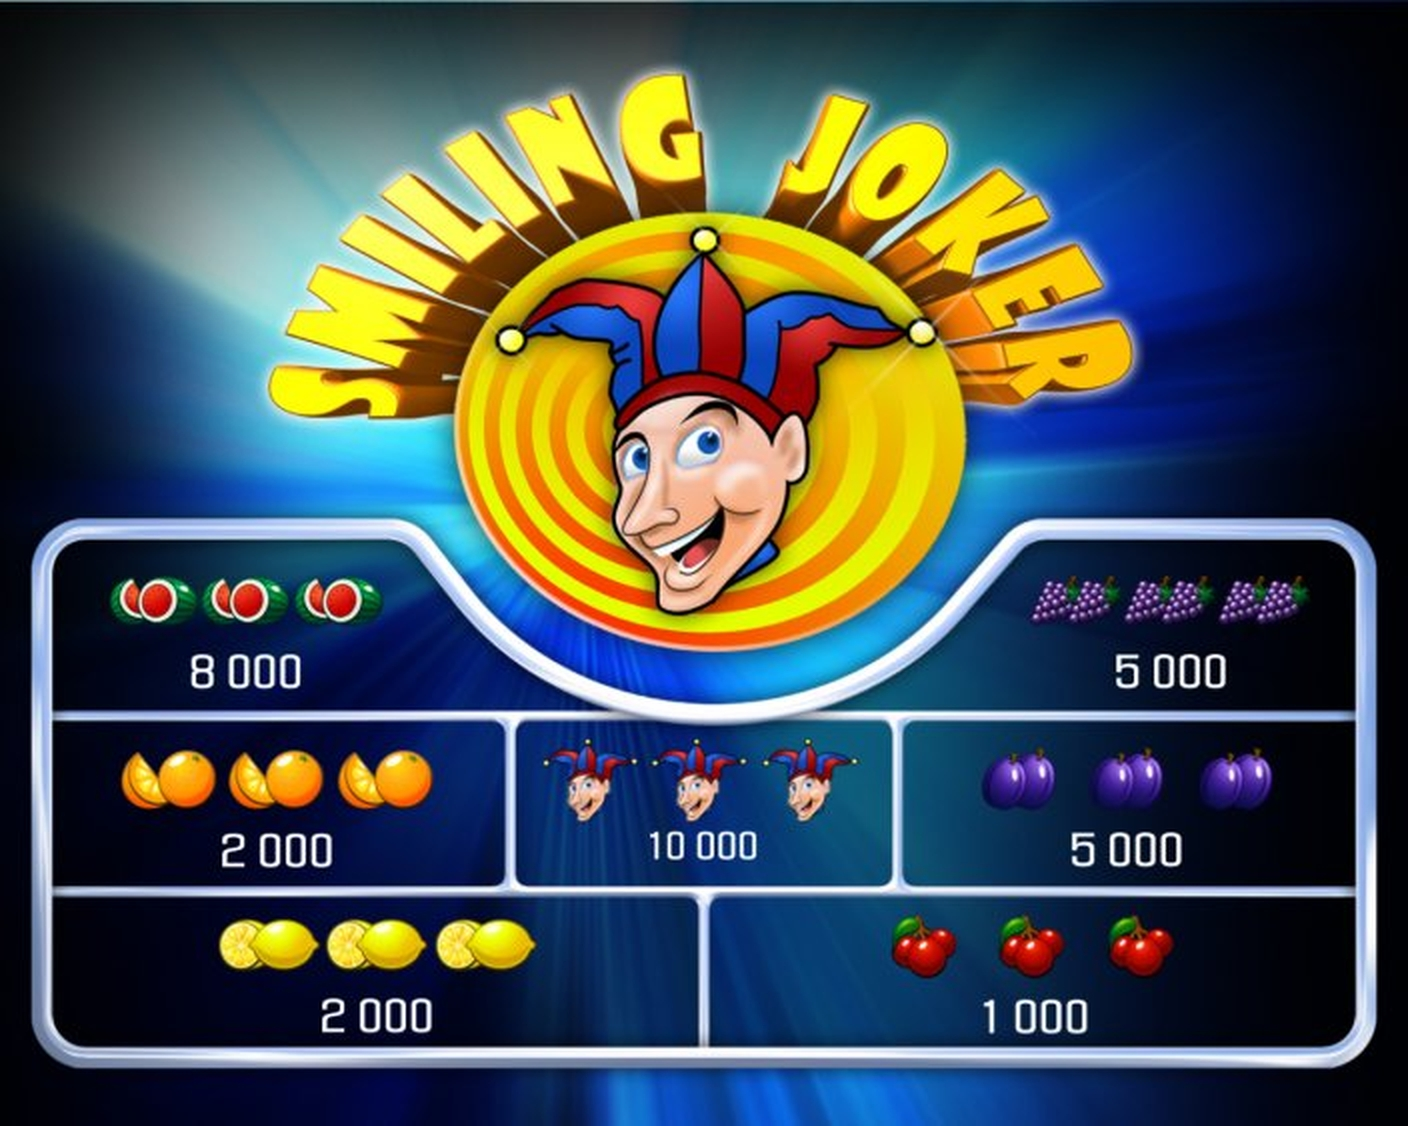 The Smiling Joker 2 Online Slot Demo Game by Apollo Games